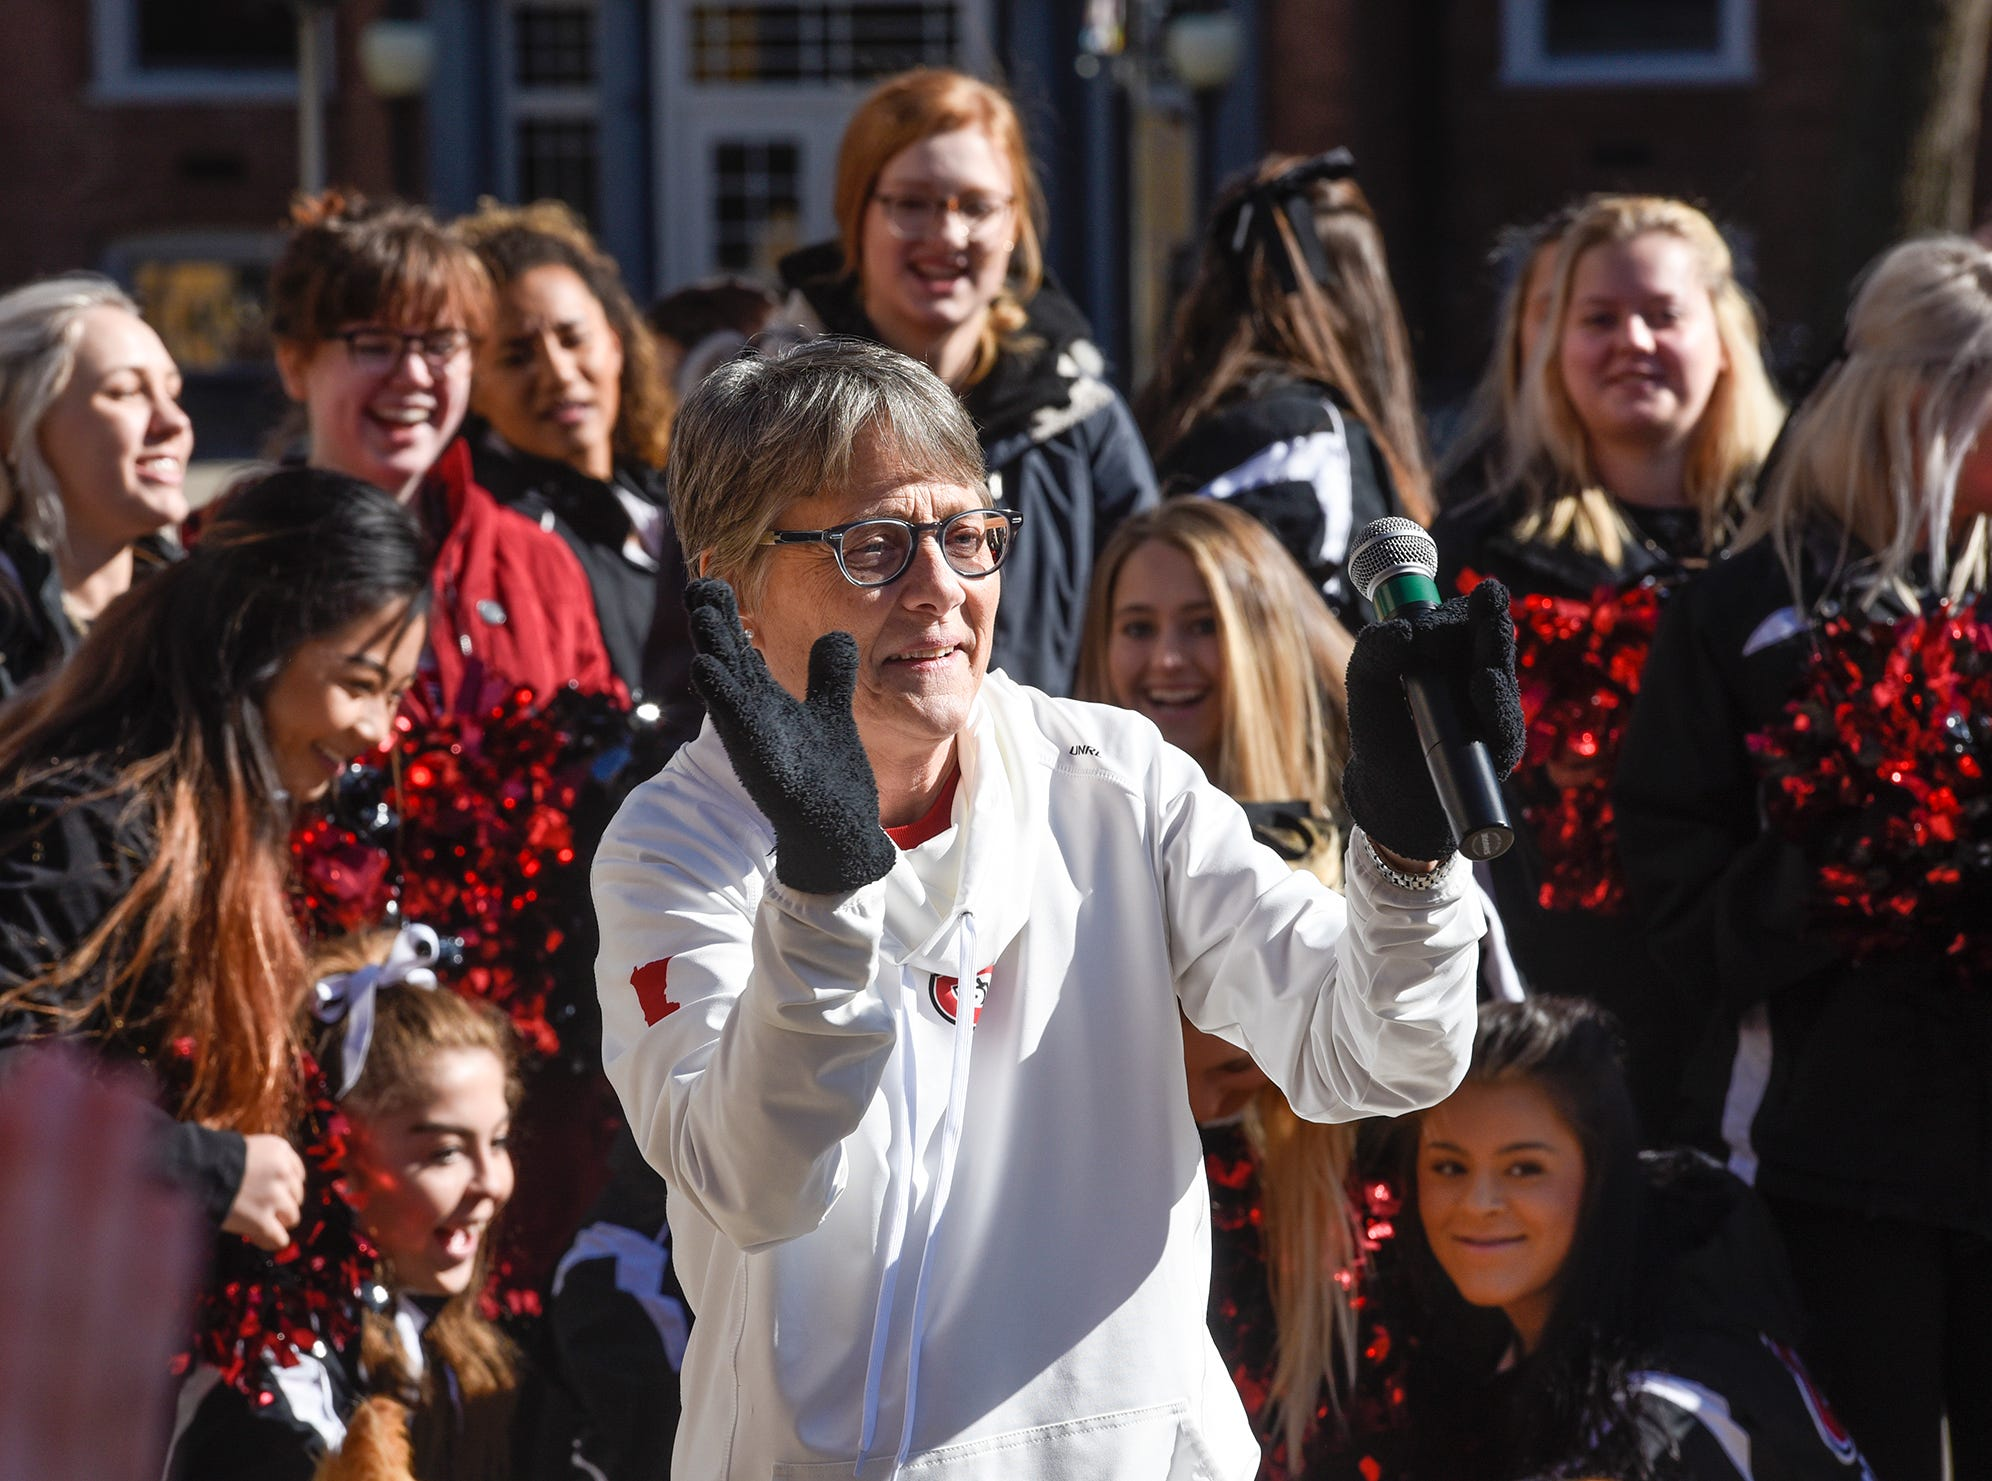 St. Cloud State University President Robbyn Wacker gets the crowd fired up during homecoming kick-off activities Wednesday, Oct. 17, at St. Cloud State University's Atwood Memorial Center Mall.